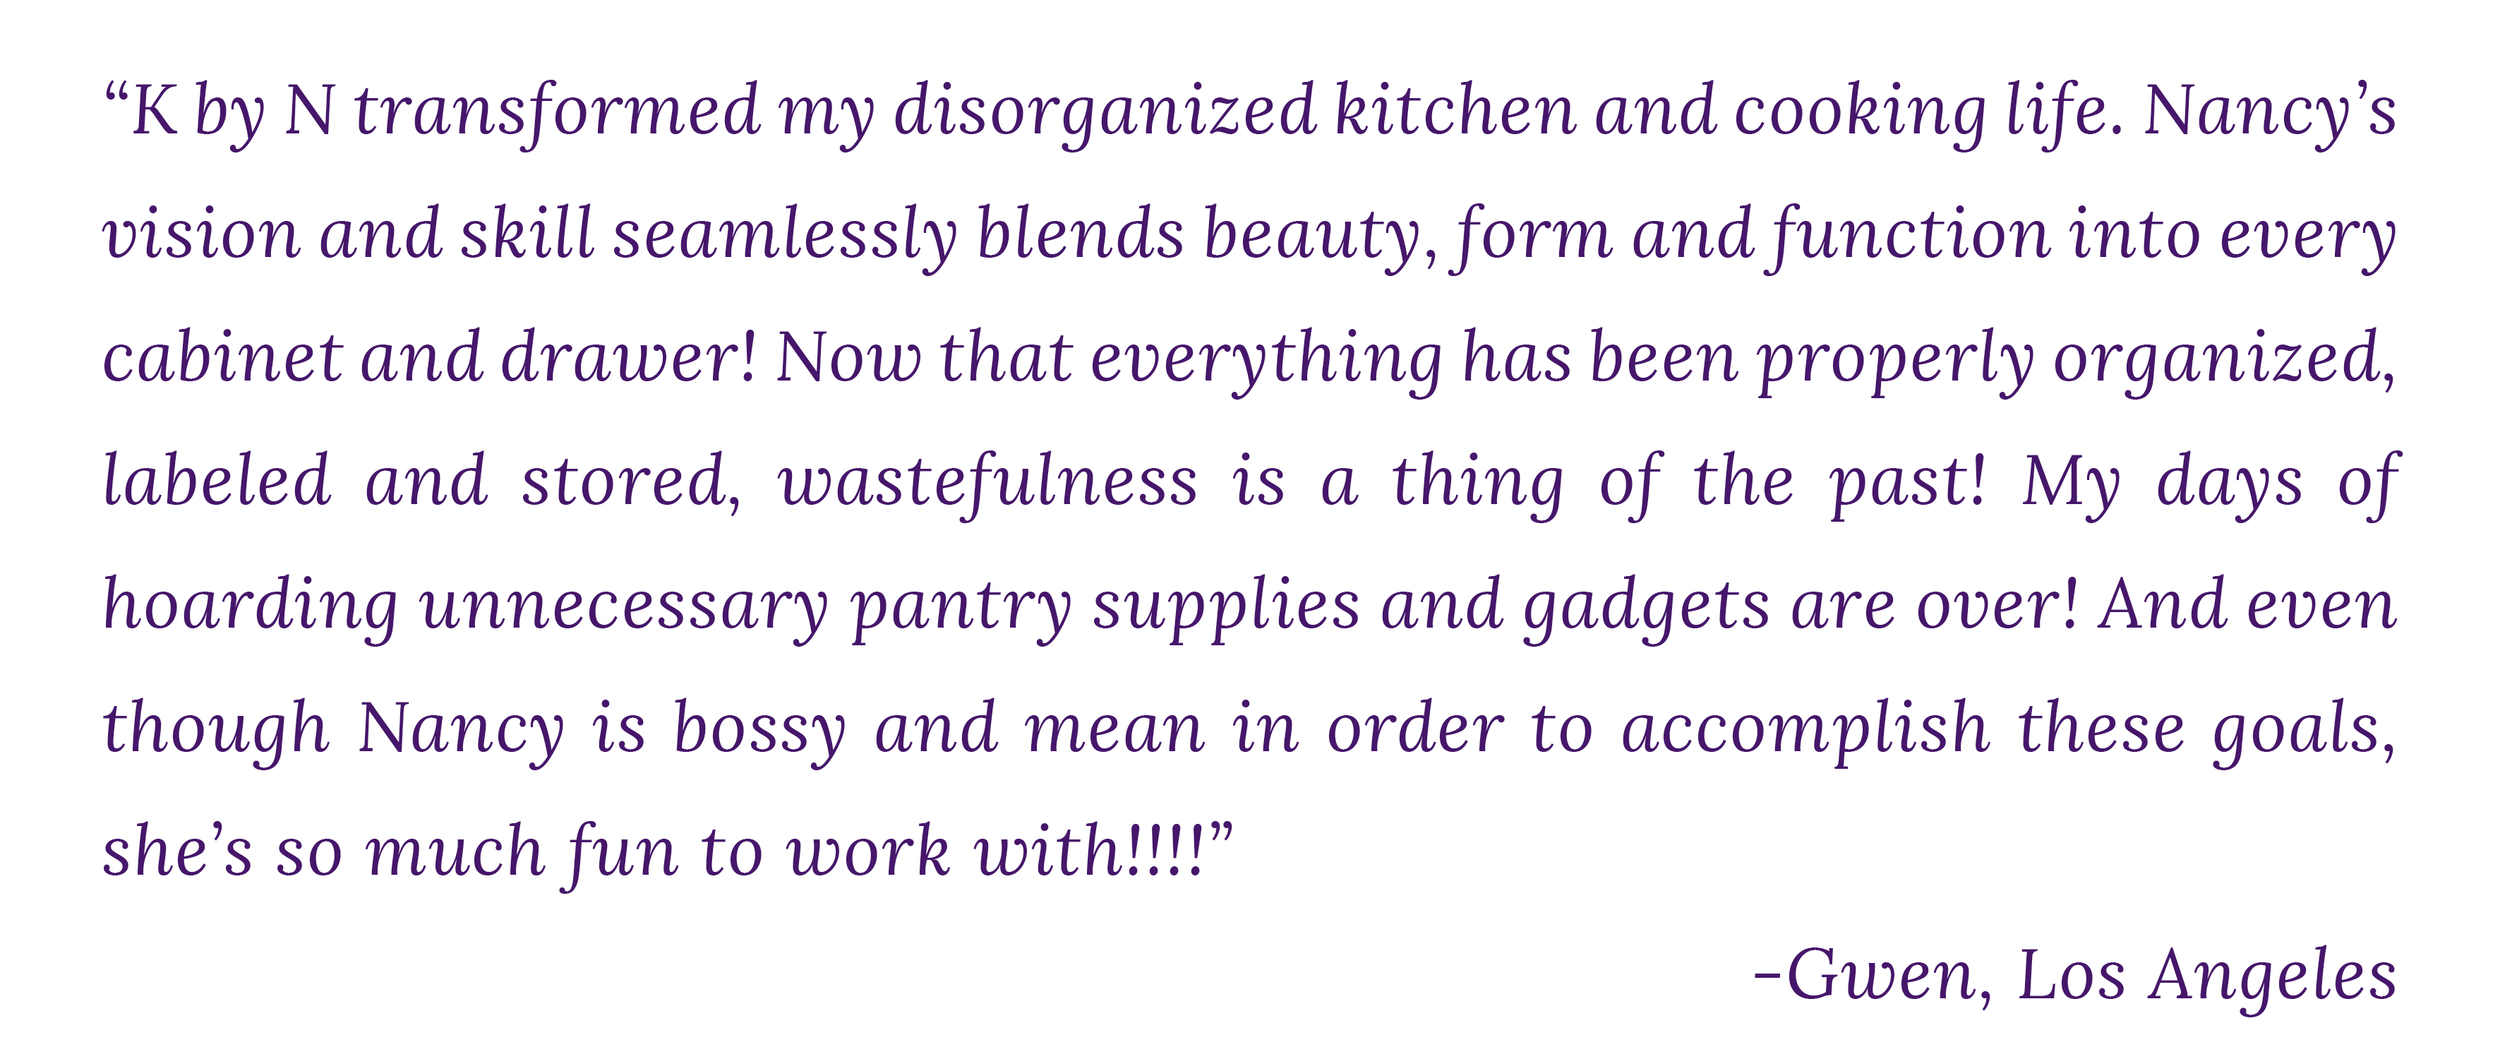 Kitchens_WebsiteTestimonials_October20185.png